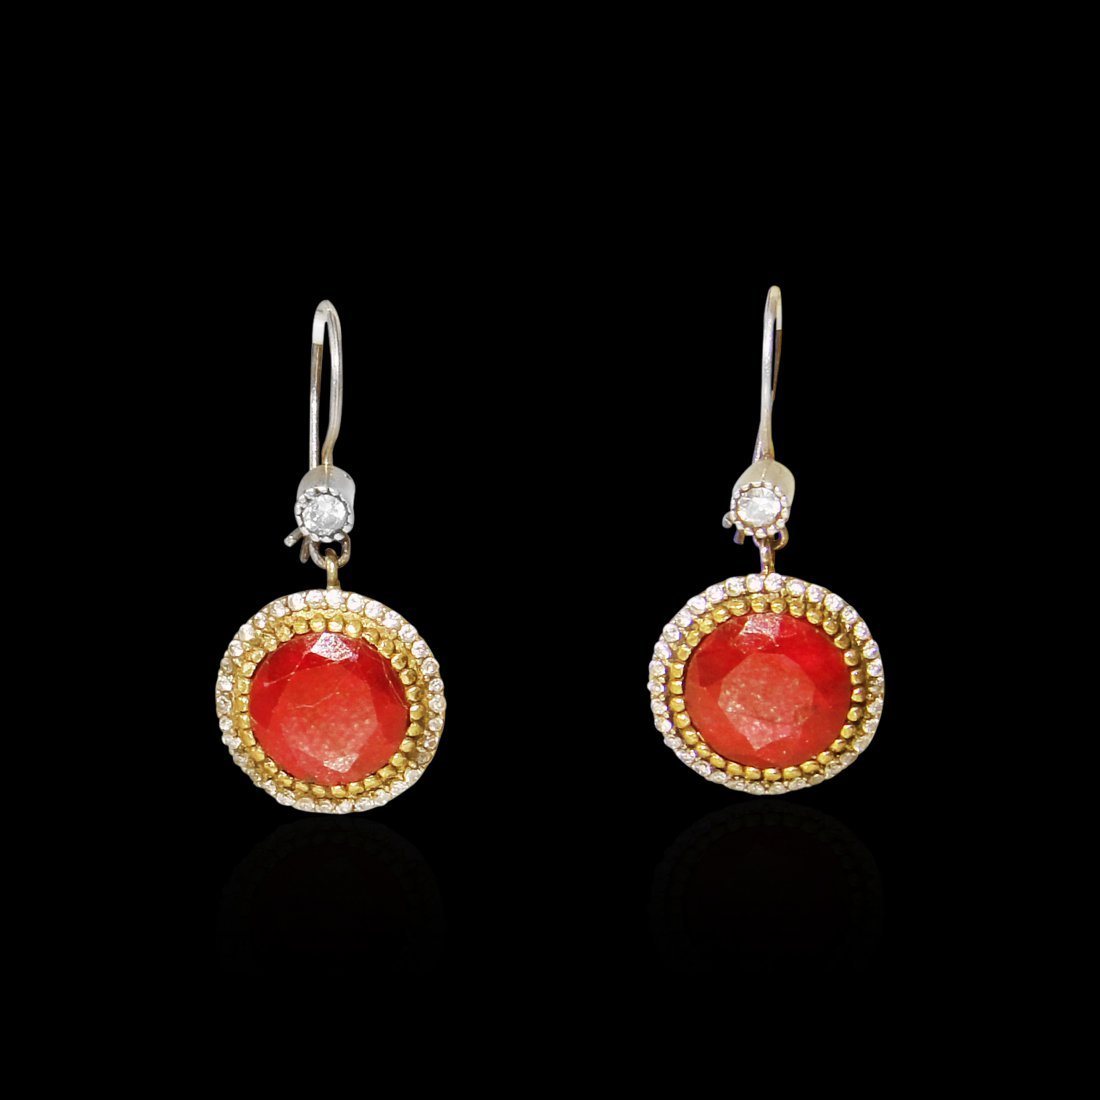 A Pair of Round Shaped Ruby Sterling Silver Earrings